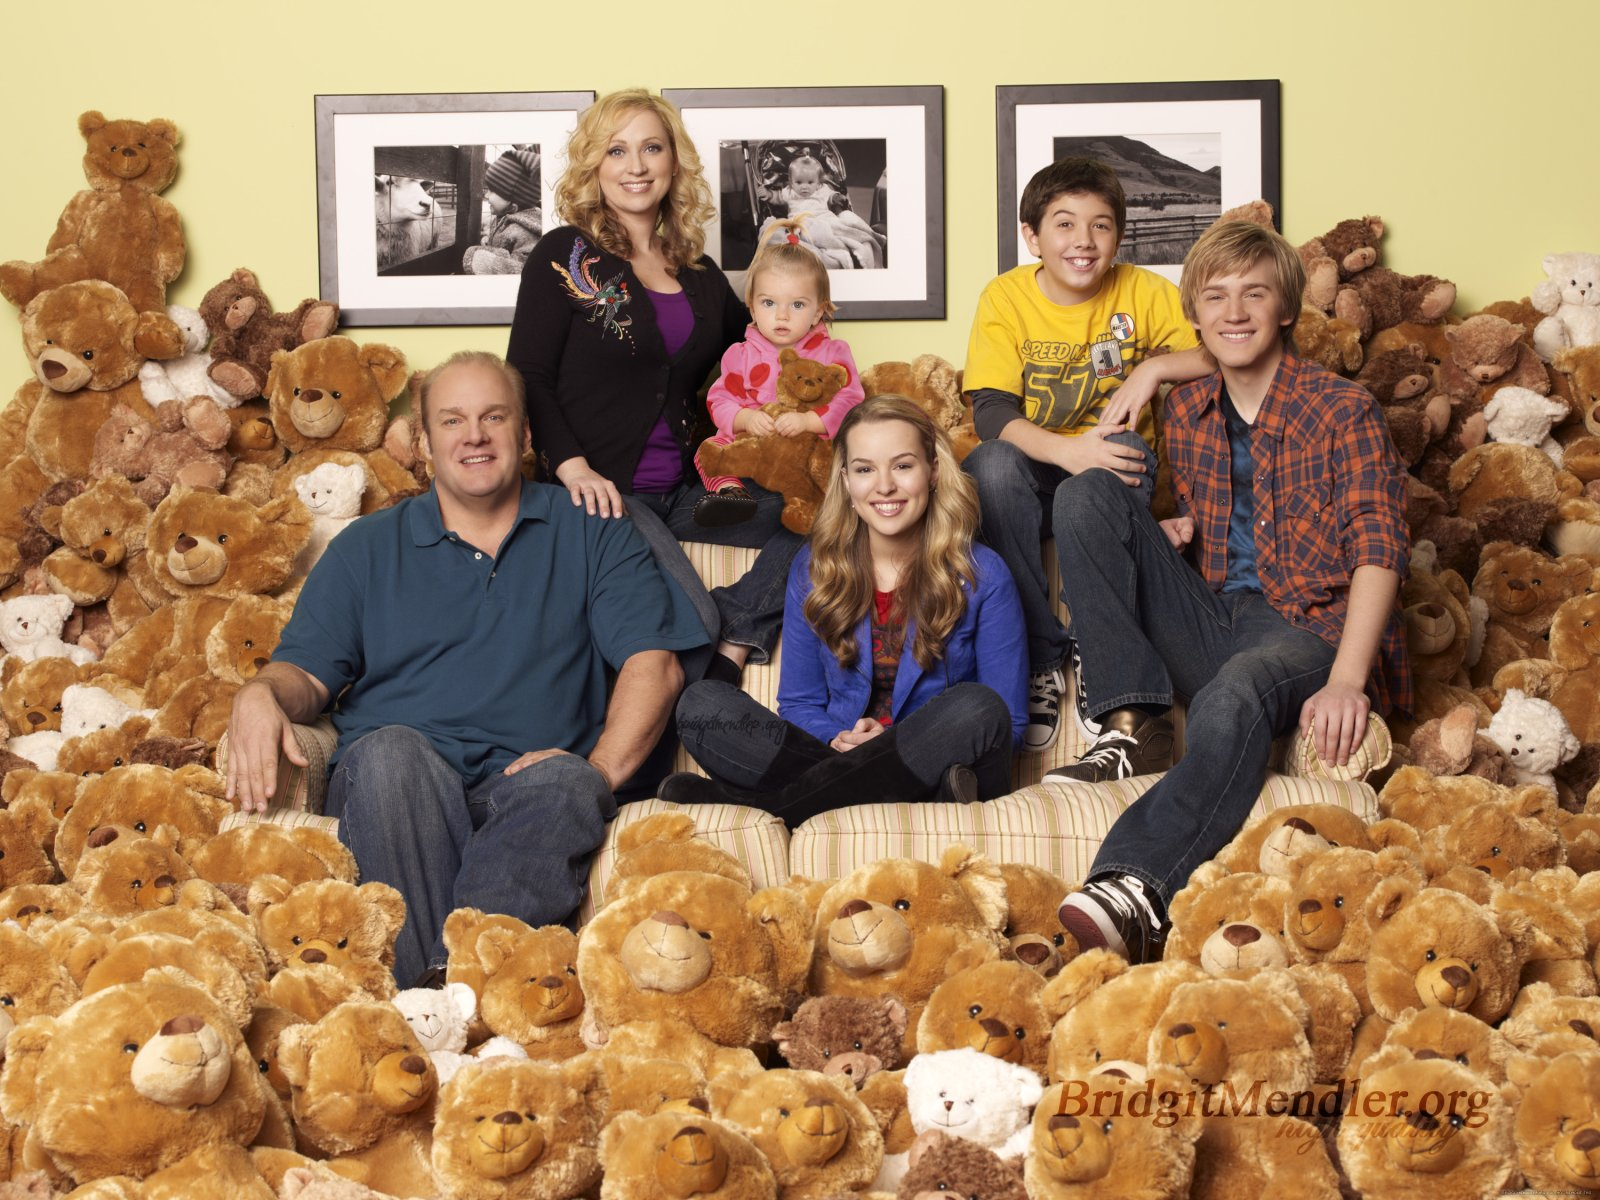 Home » Sitcoms » Current Sitcoms » Good Luck Charlie